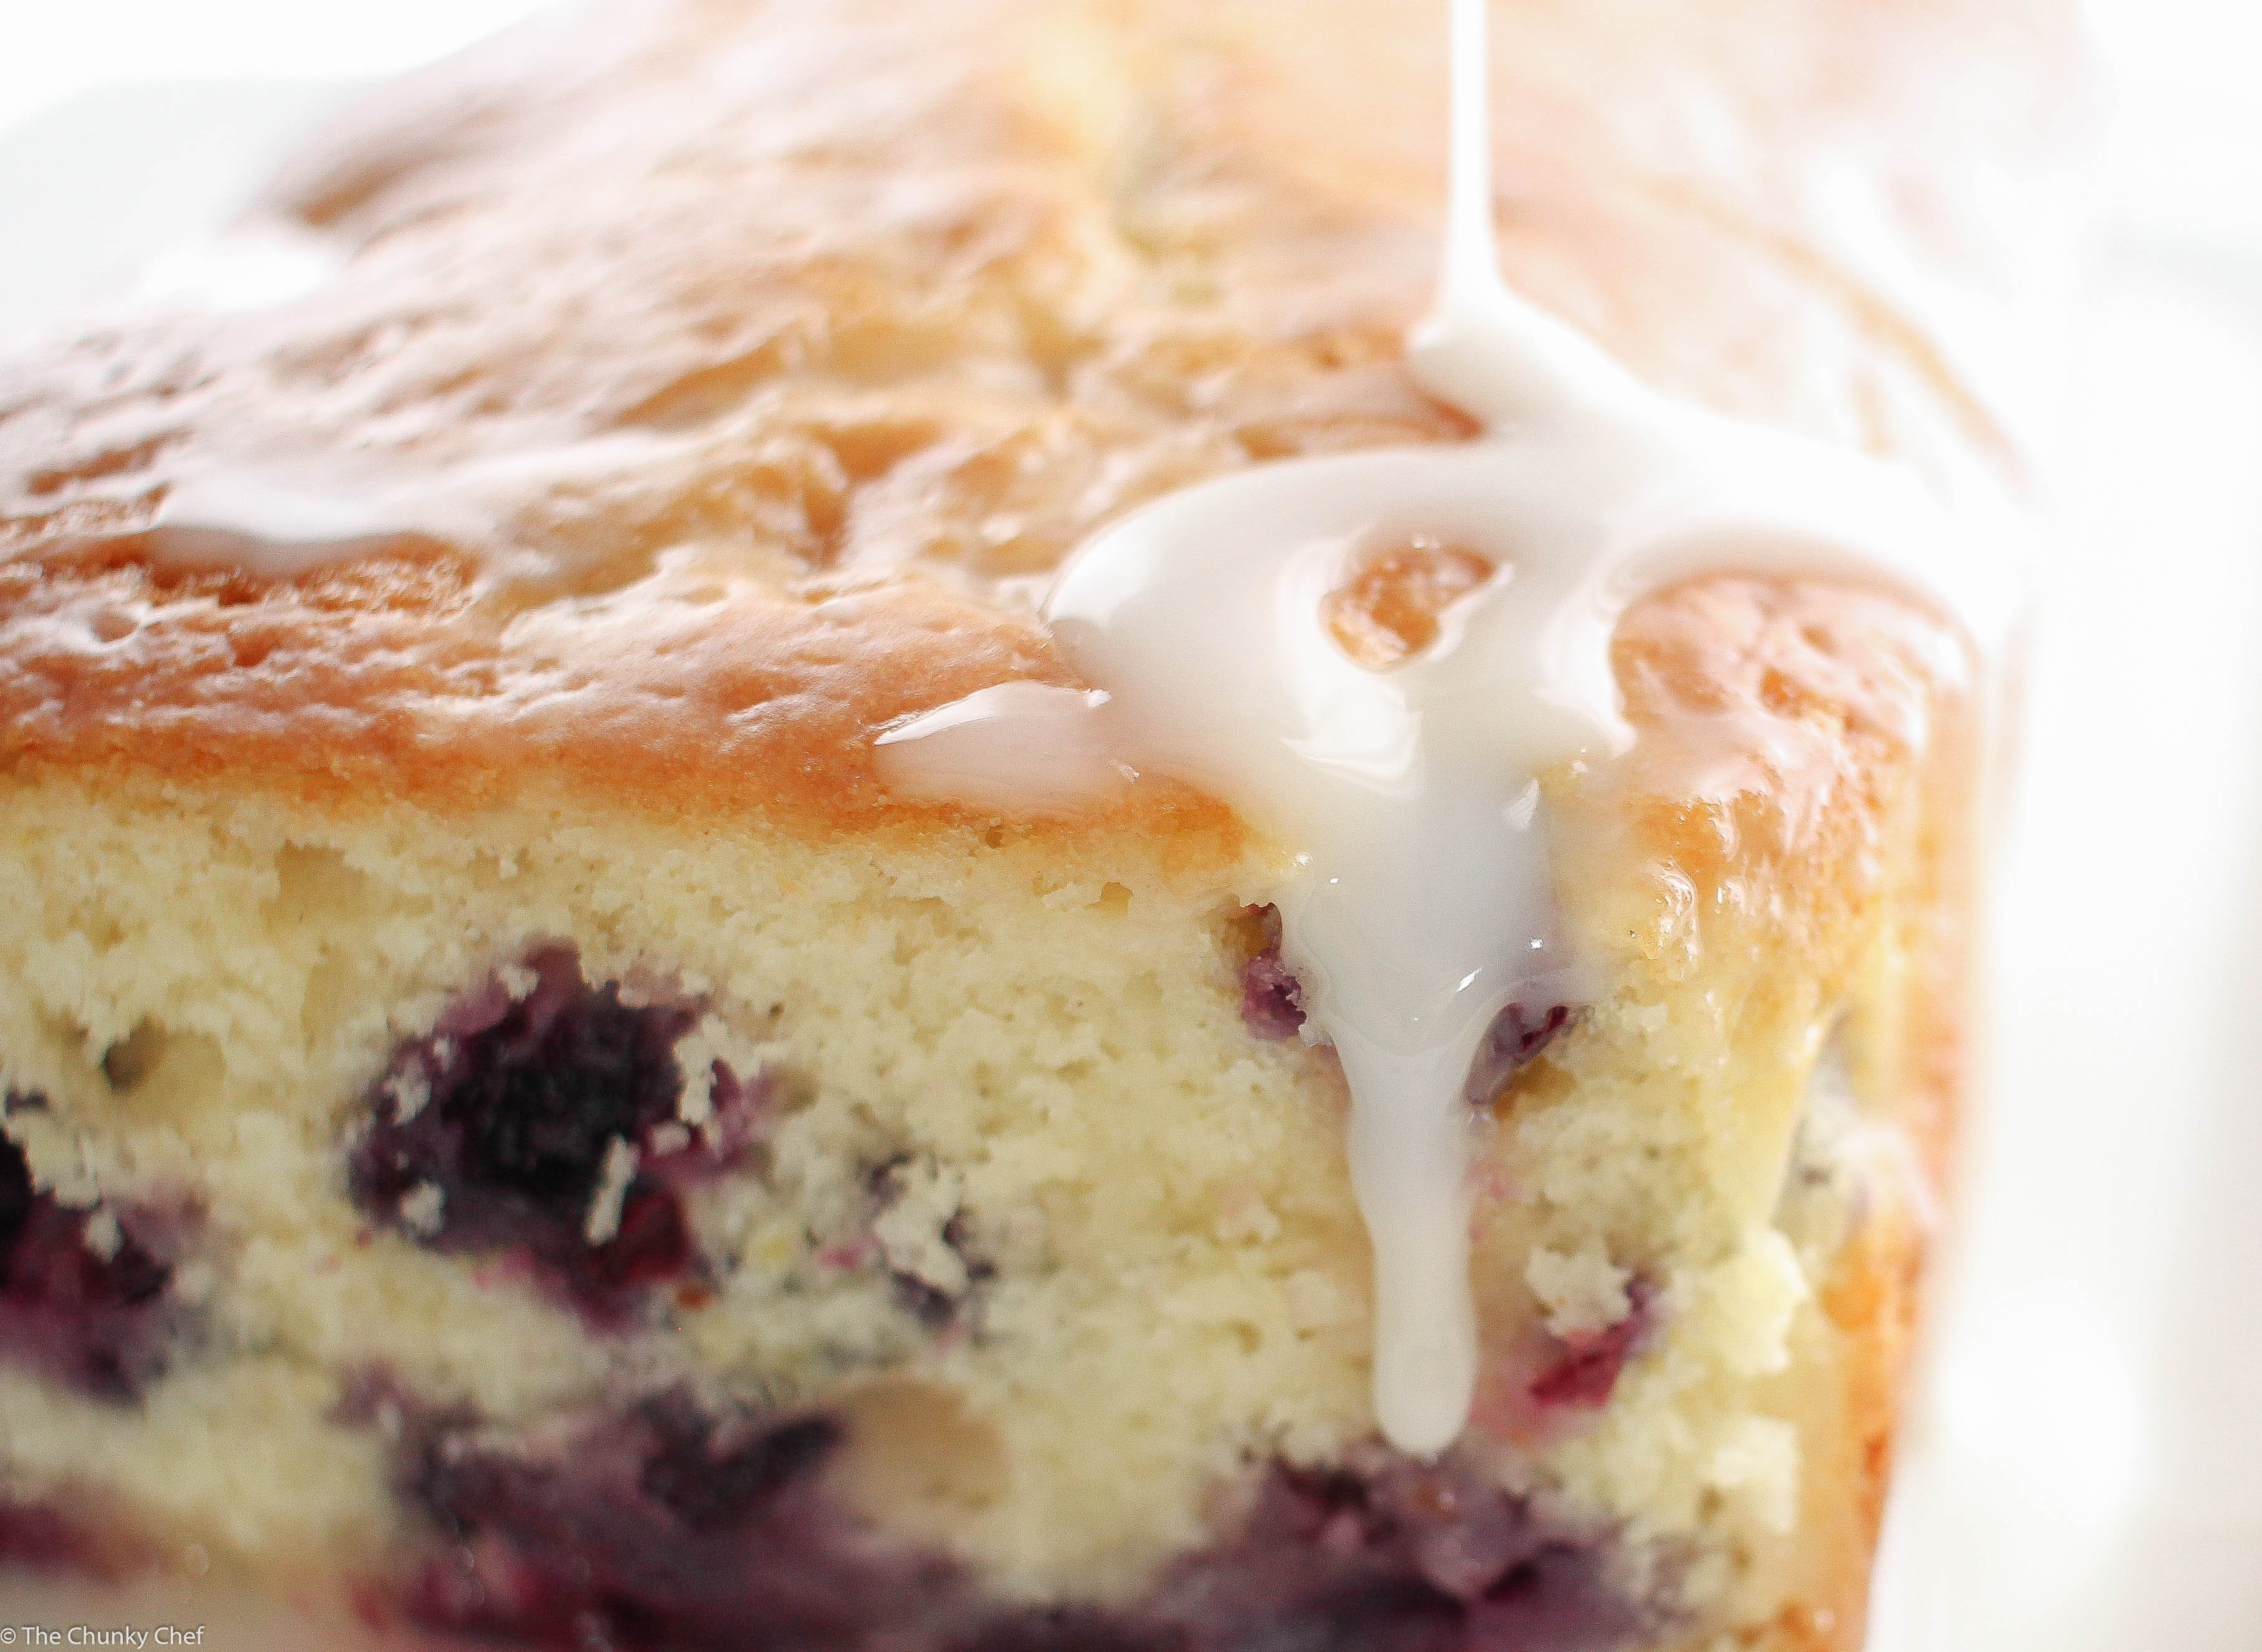 Lemon Blueberry Bread with Lemon Cream Cheese Glaze - The Chunky Chef